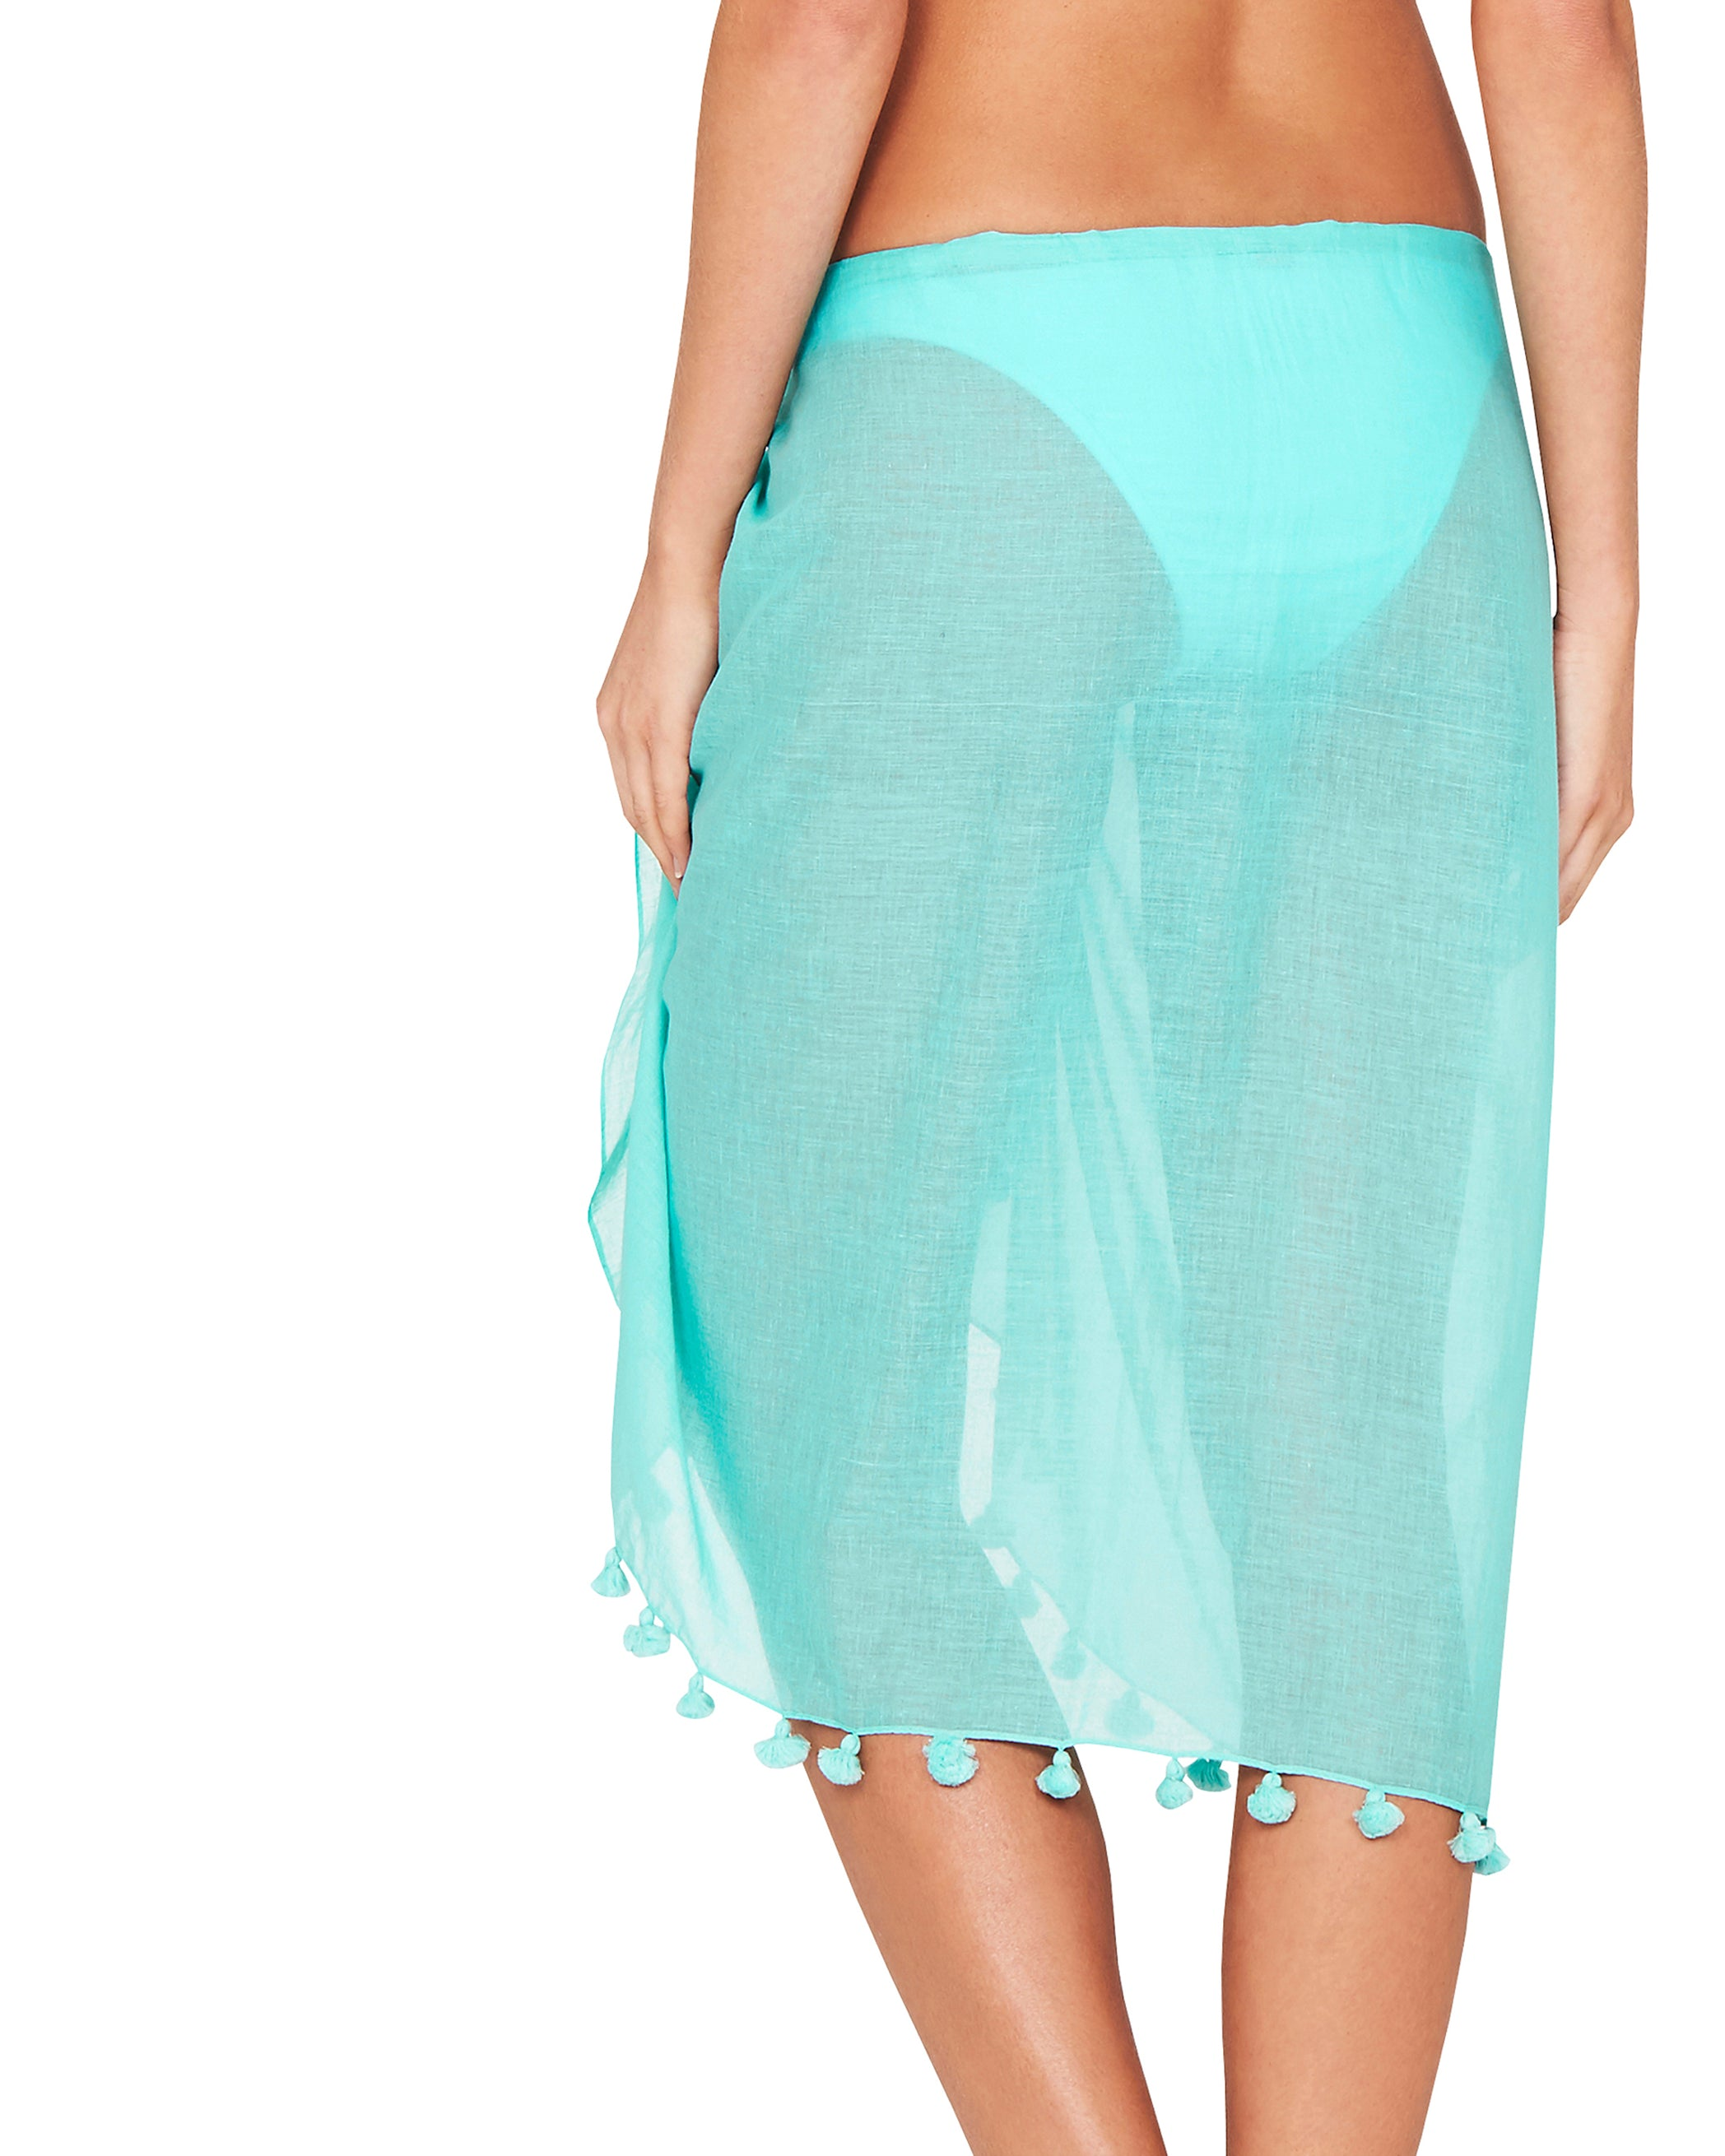 RESORTWEAR BEACH SARONG